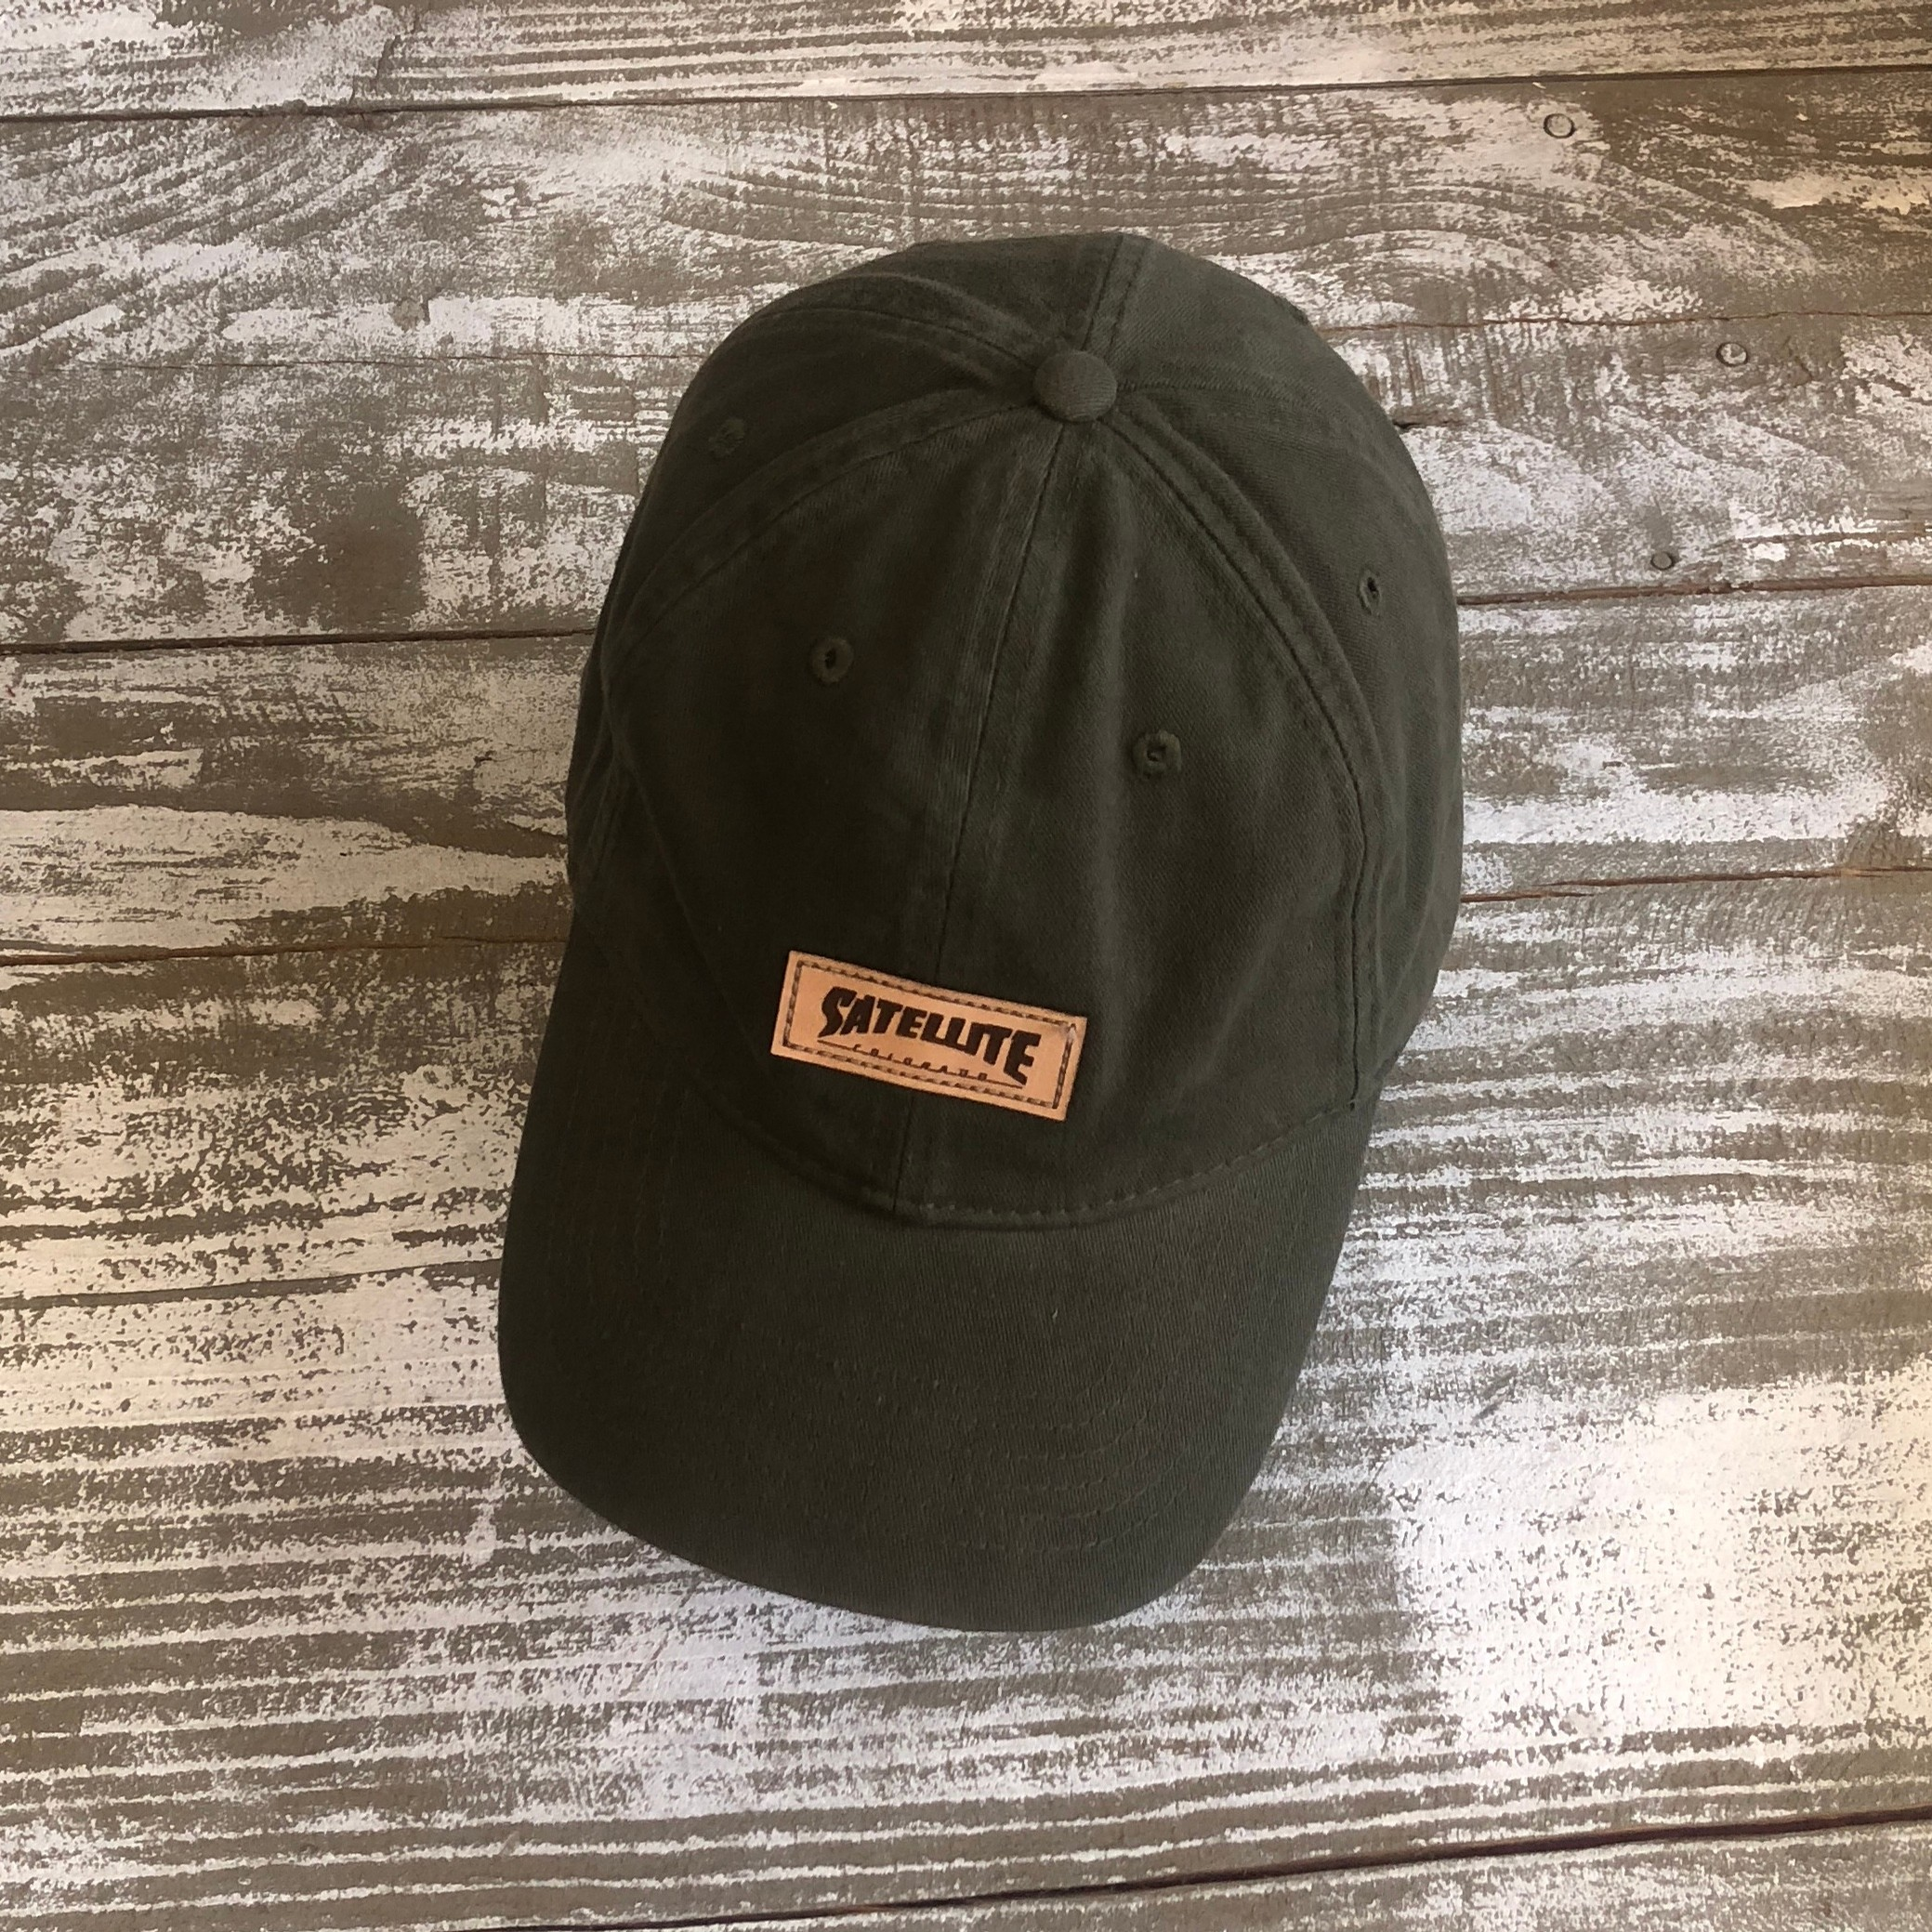 Satellite Dad Cap (olive)